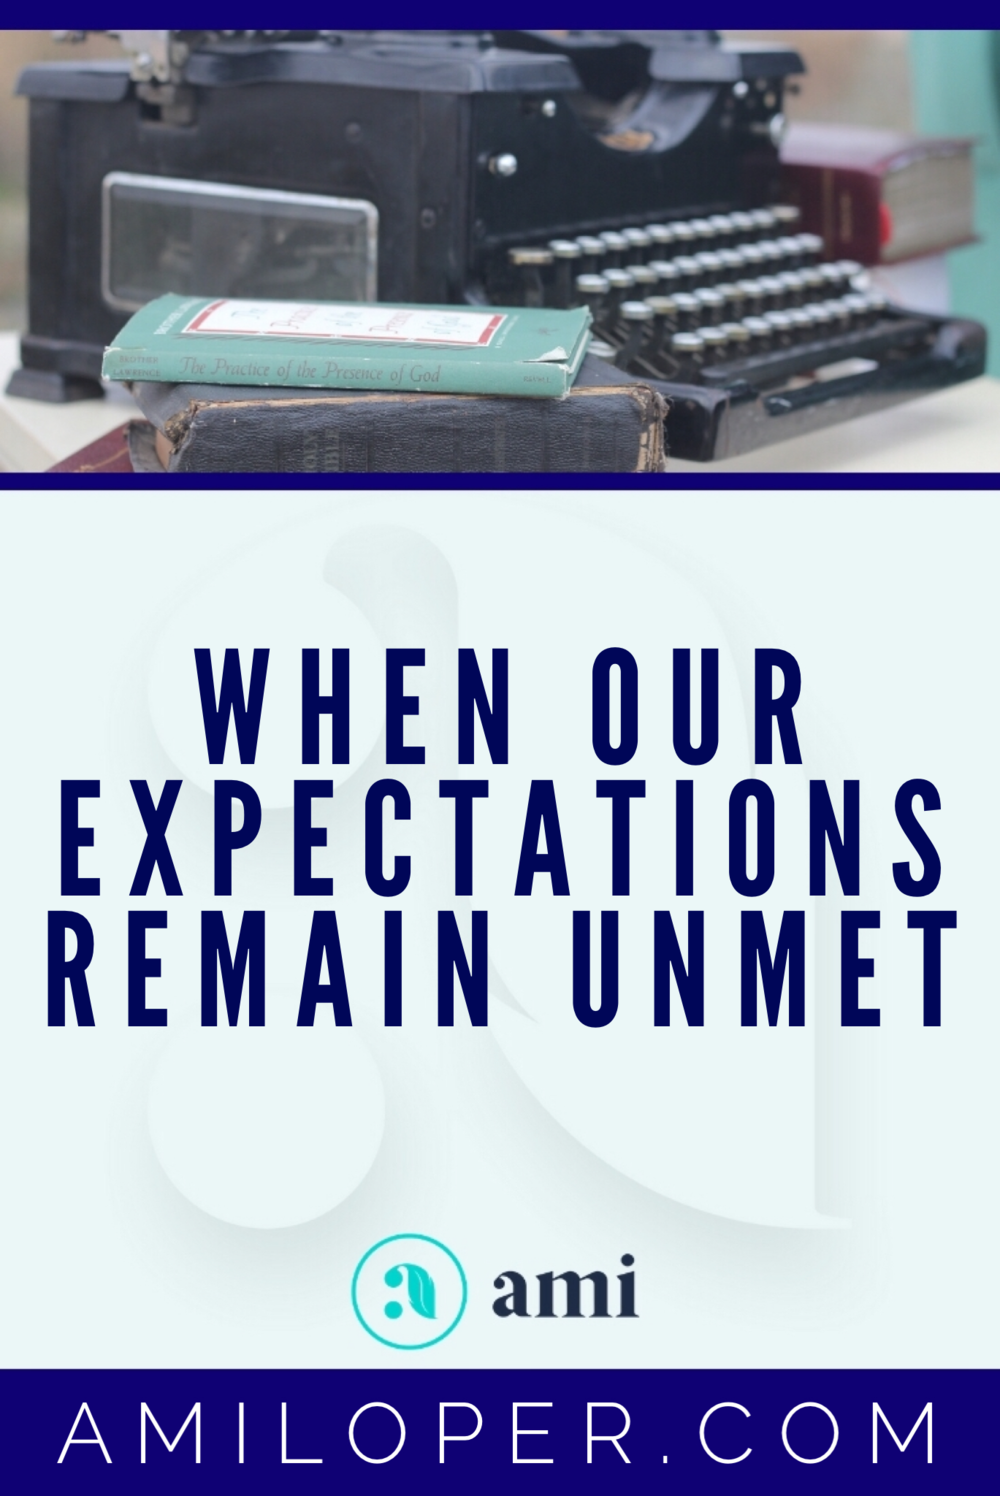 Have you ever been all set up emotionally for God to come through, for that breakthrough you can see in your mind's eye to materialize, only to have what looked like the perfect opportunity evaporate before your eyes? Me too. And this is what I felt the Lord told me about those times. #expectationVSReality #ChristianBlog